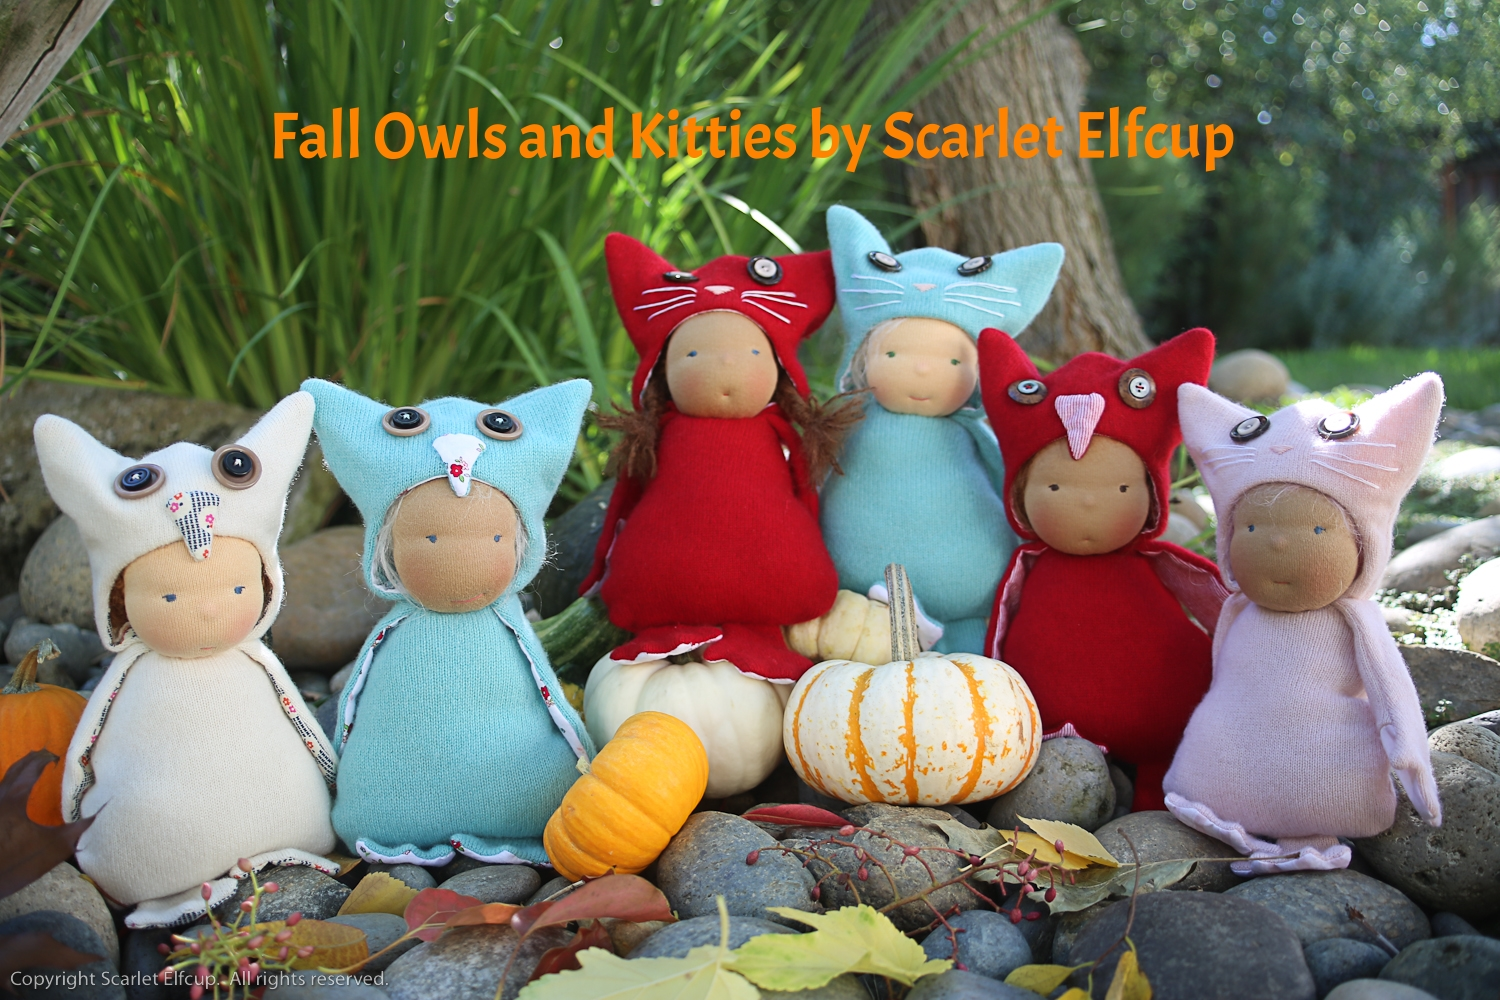 From left to right, meet Avery, Blue, Juliet, Jade, Boo and Rose. Read about each of these owls and kitties in the  blog .